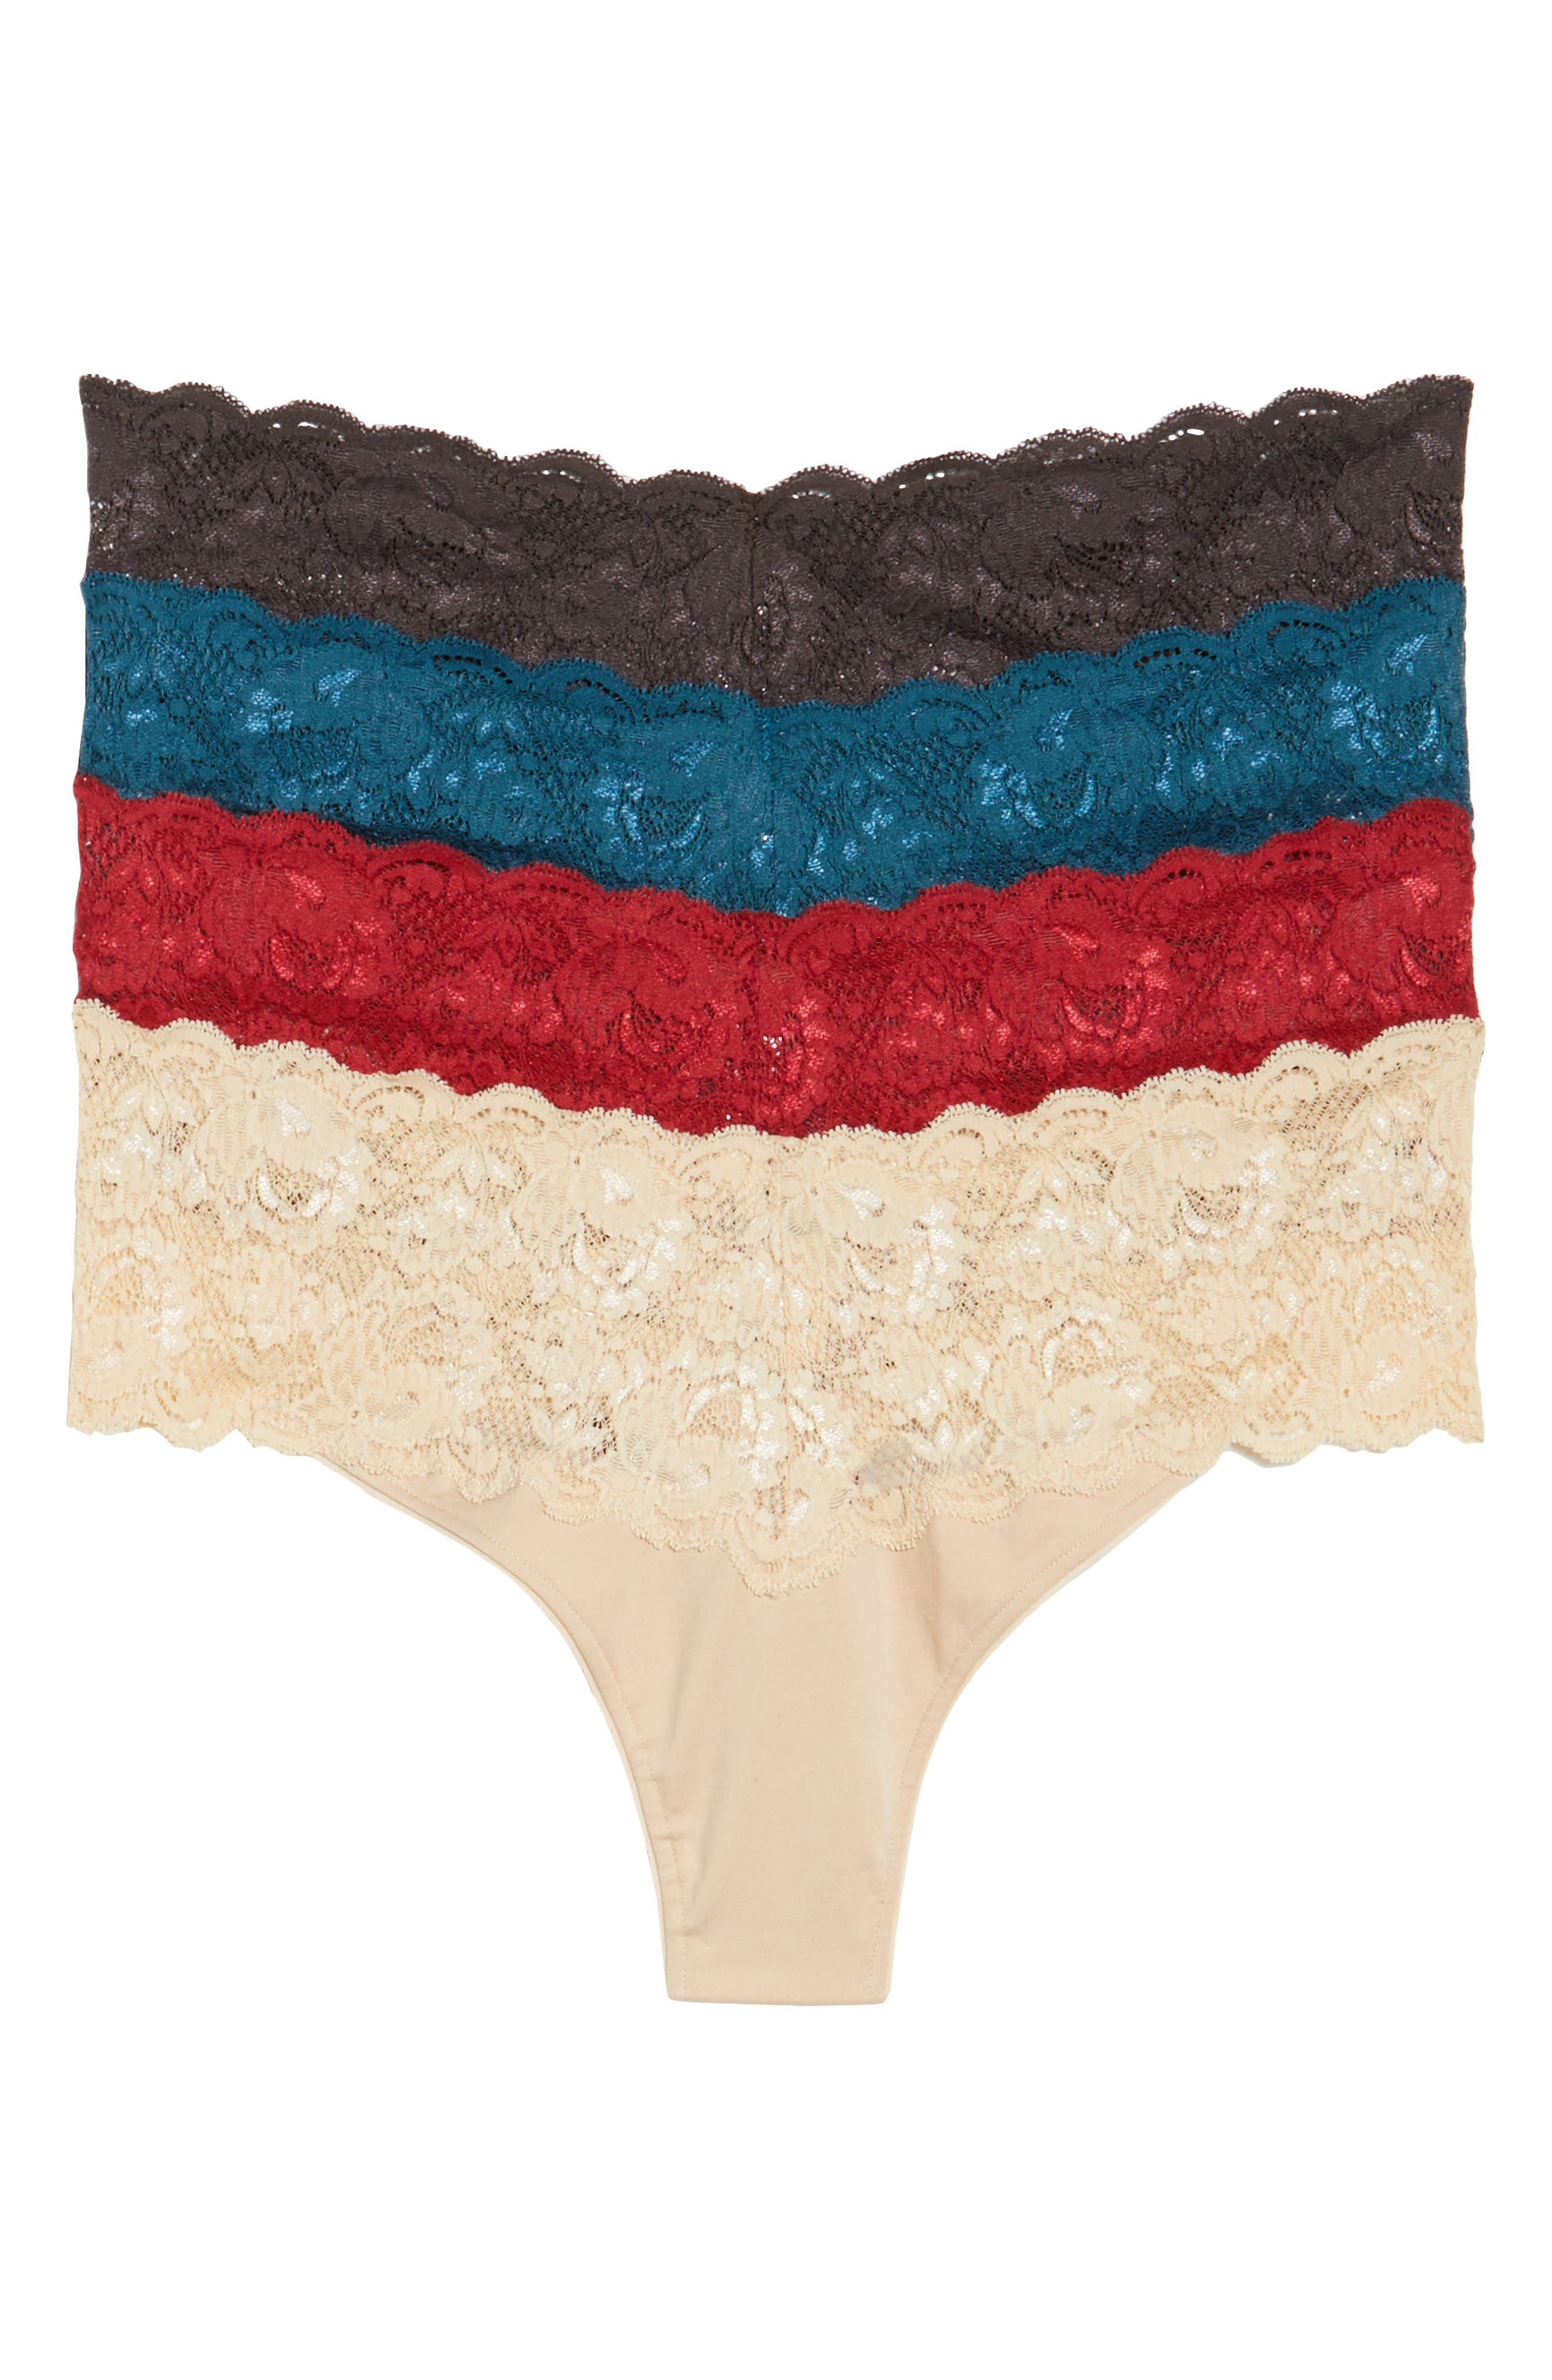 Never Say Never - Box of Love 4-Pack Thongs,                         Main,                         color, Multi